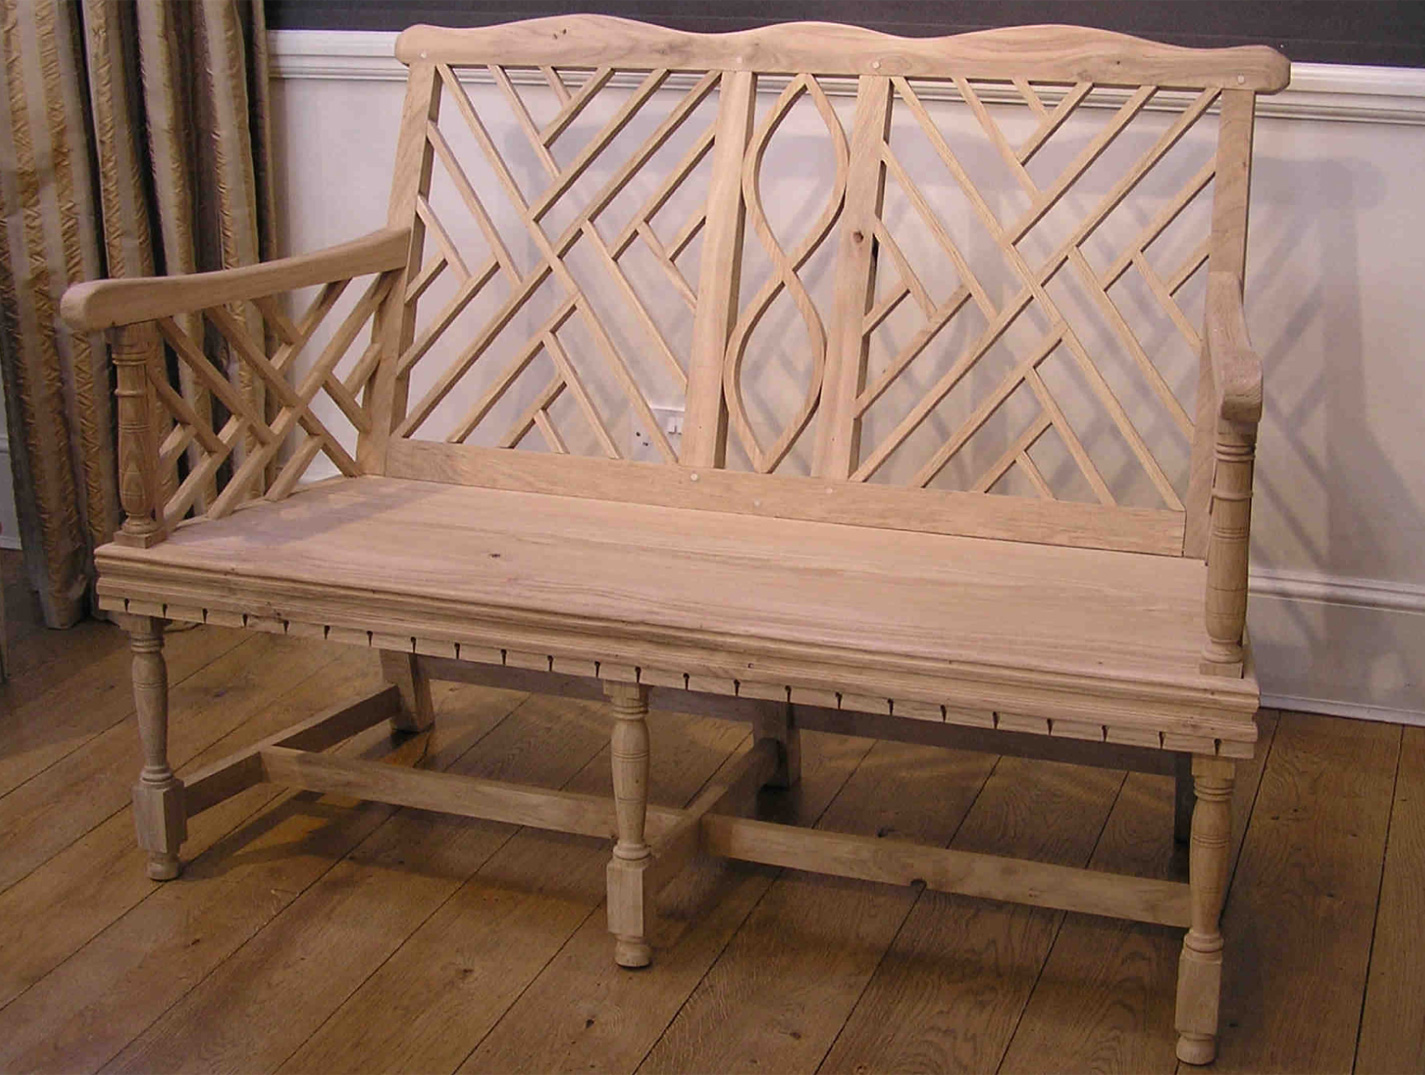 Lutyens style two seater garden bench.